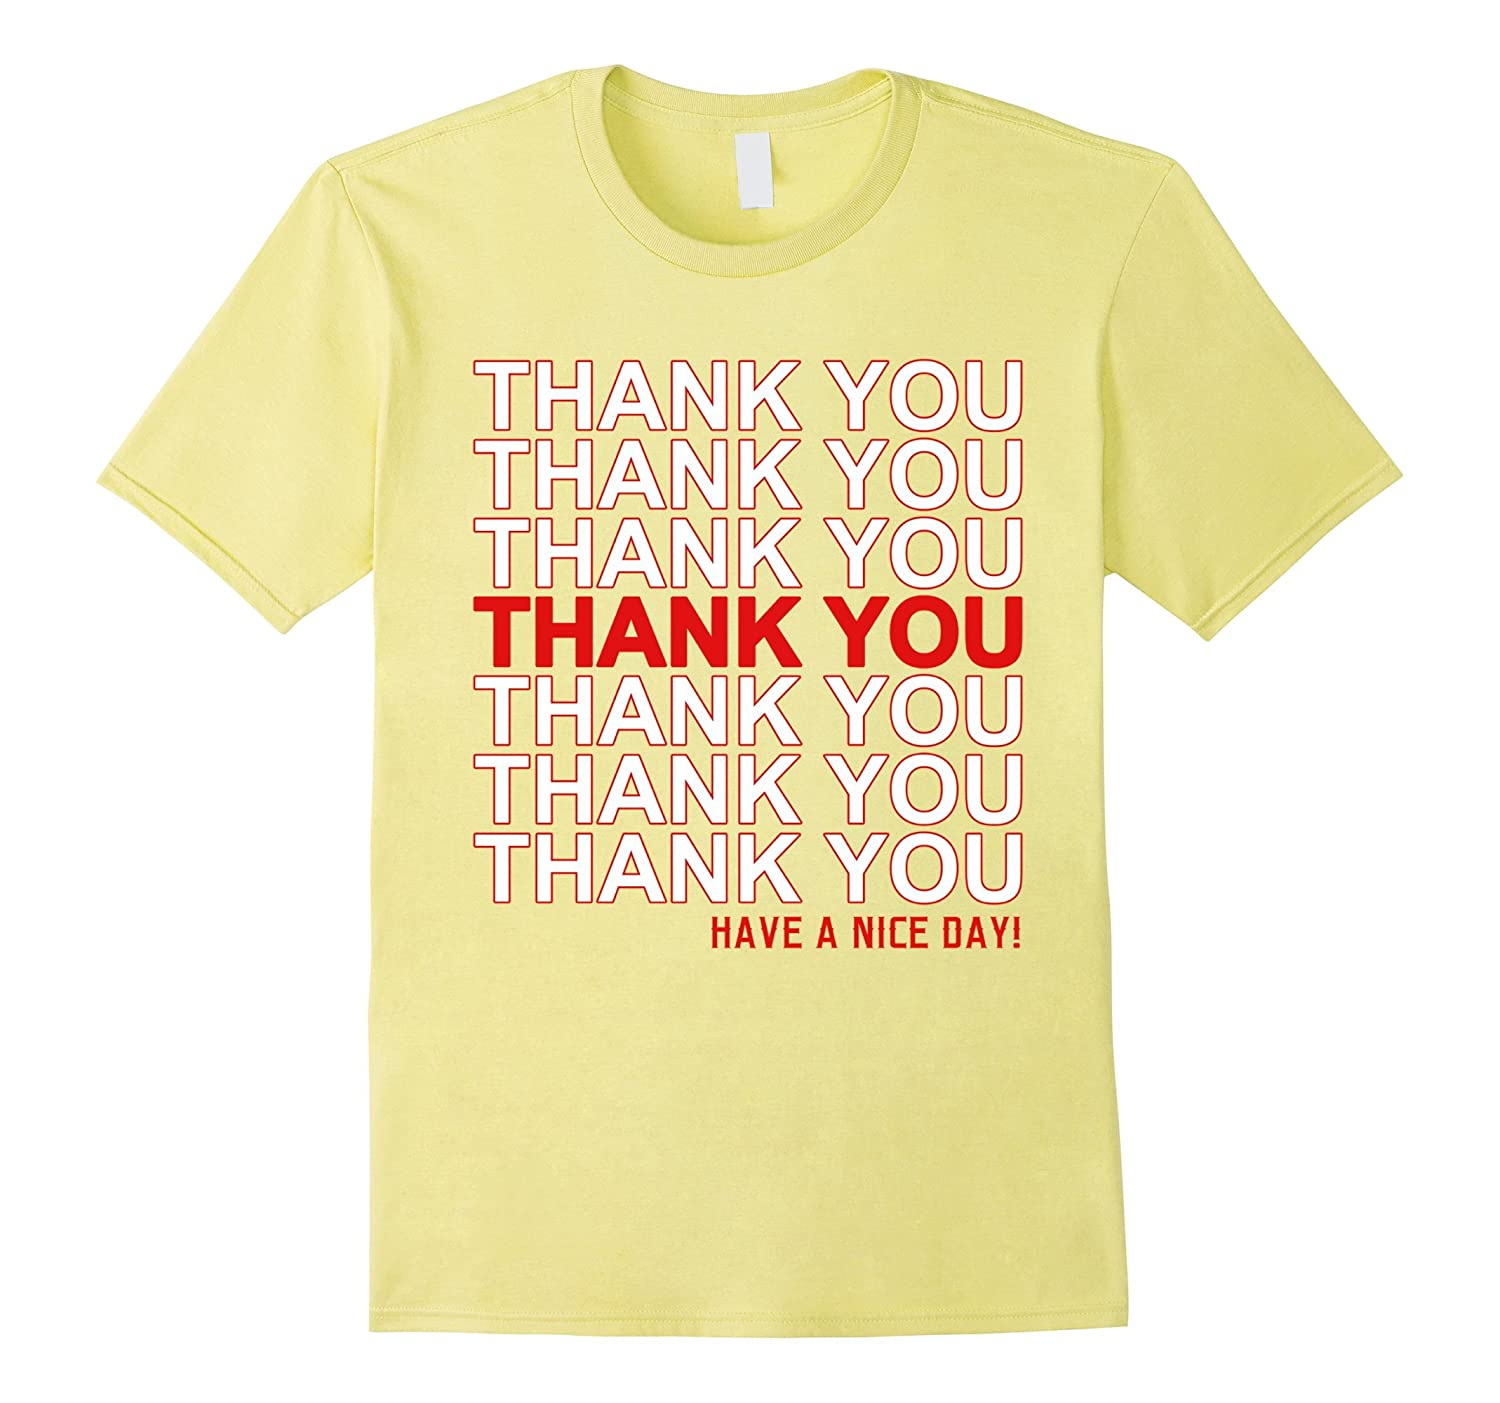 57d2cece6 Thank You Have A Nice Day Grocery Bag Novelty Funny T-Shirt-BN ...